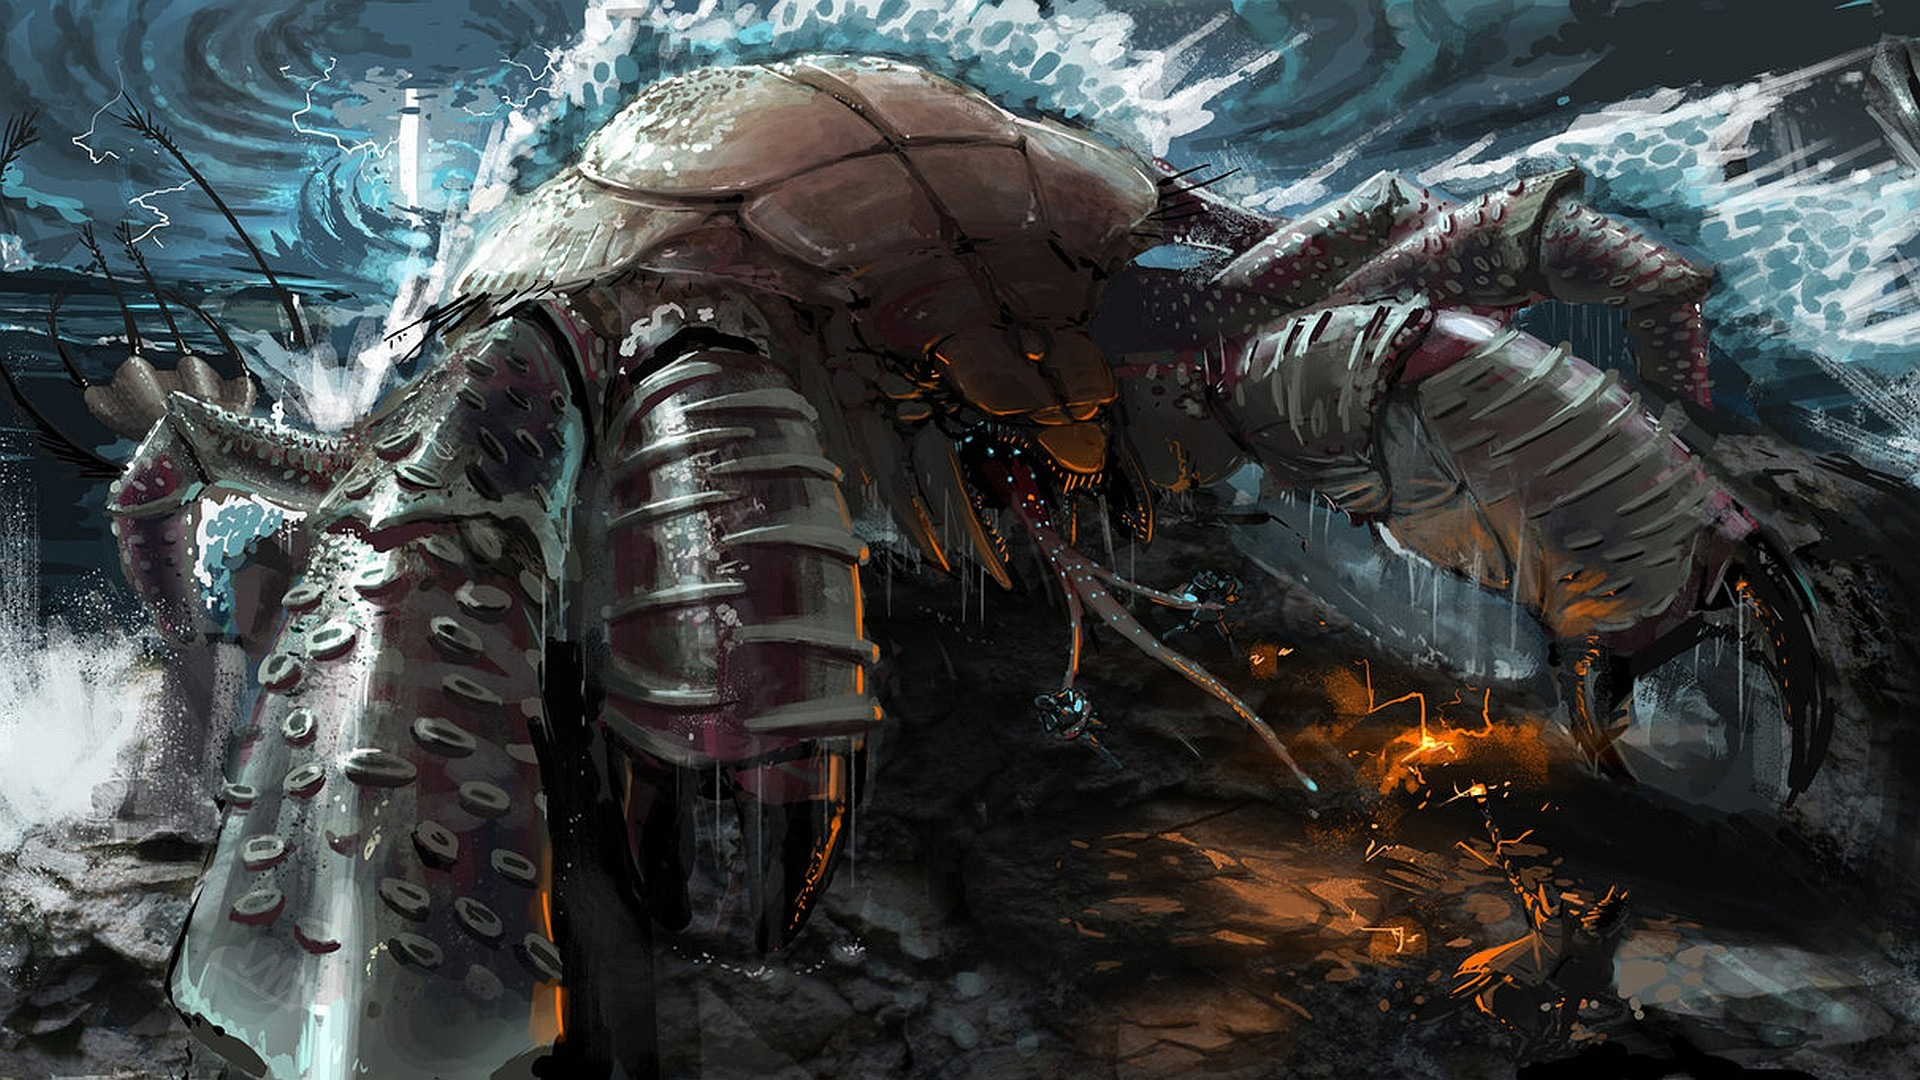 Giant crab monster